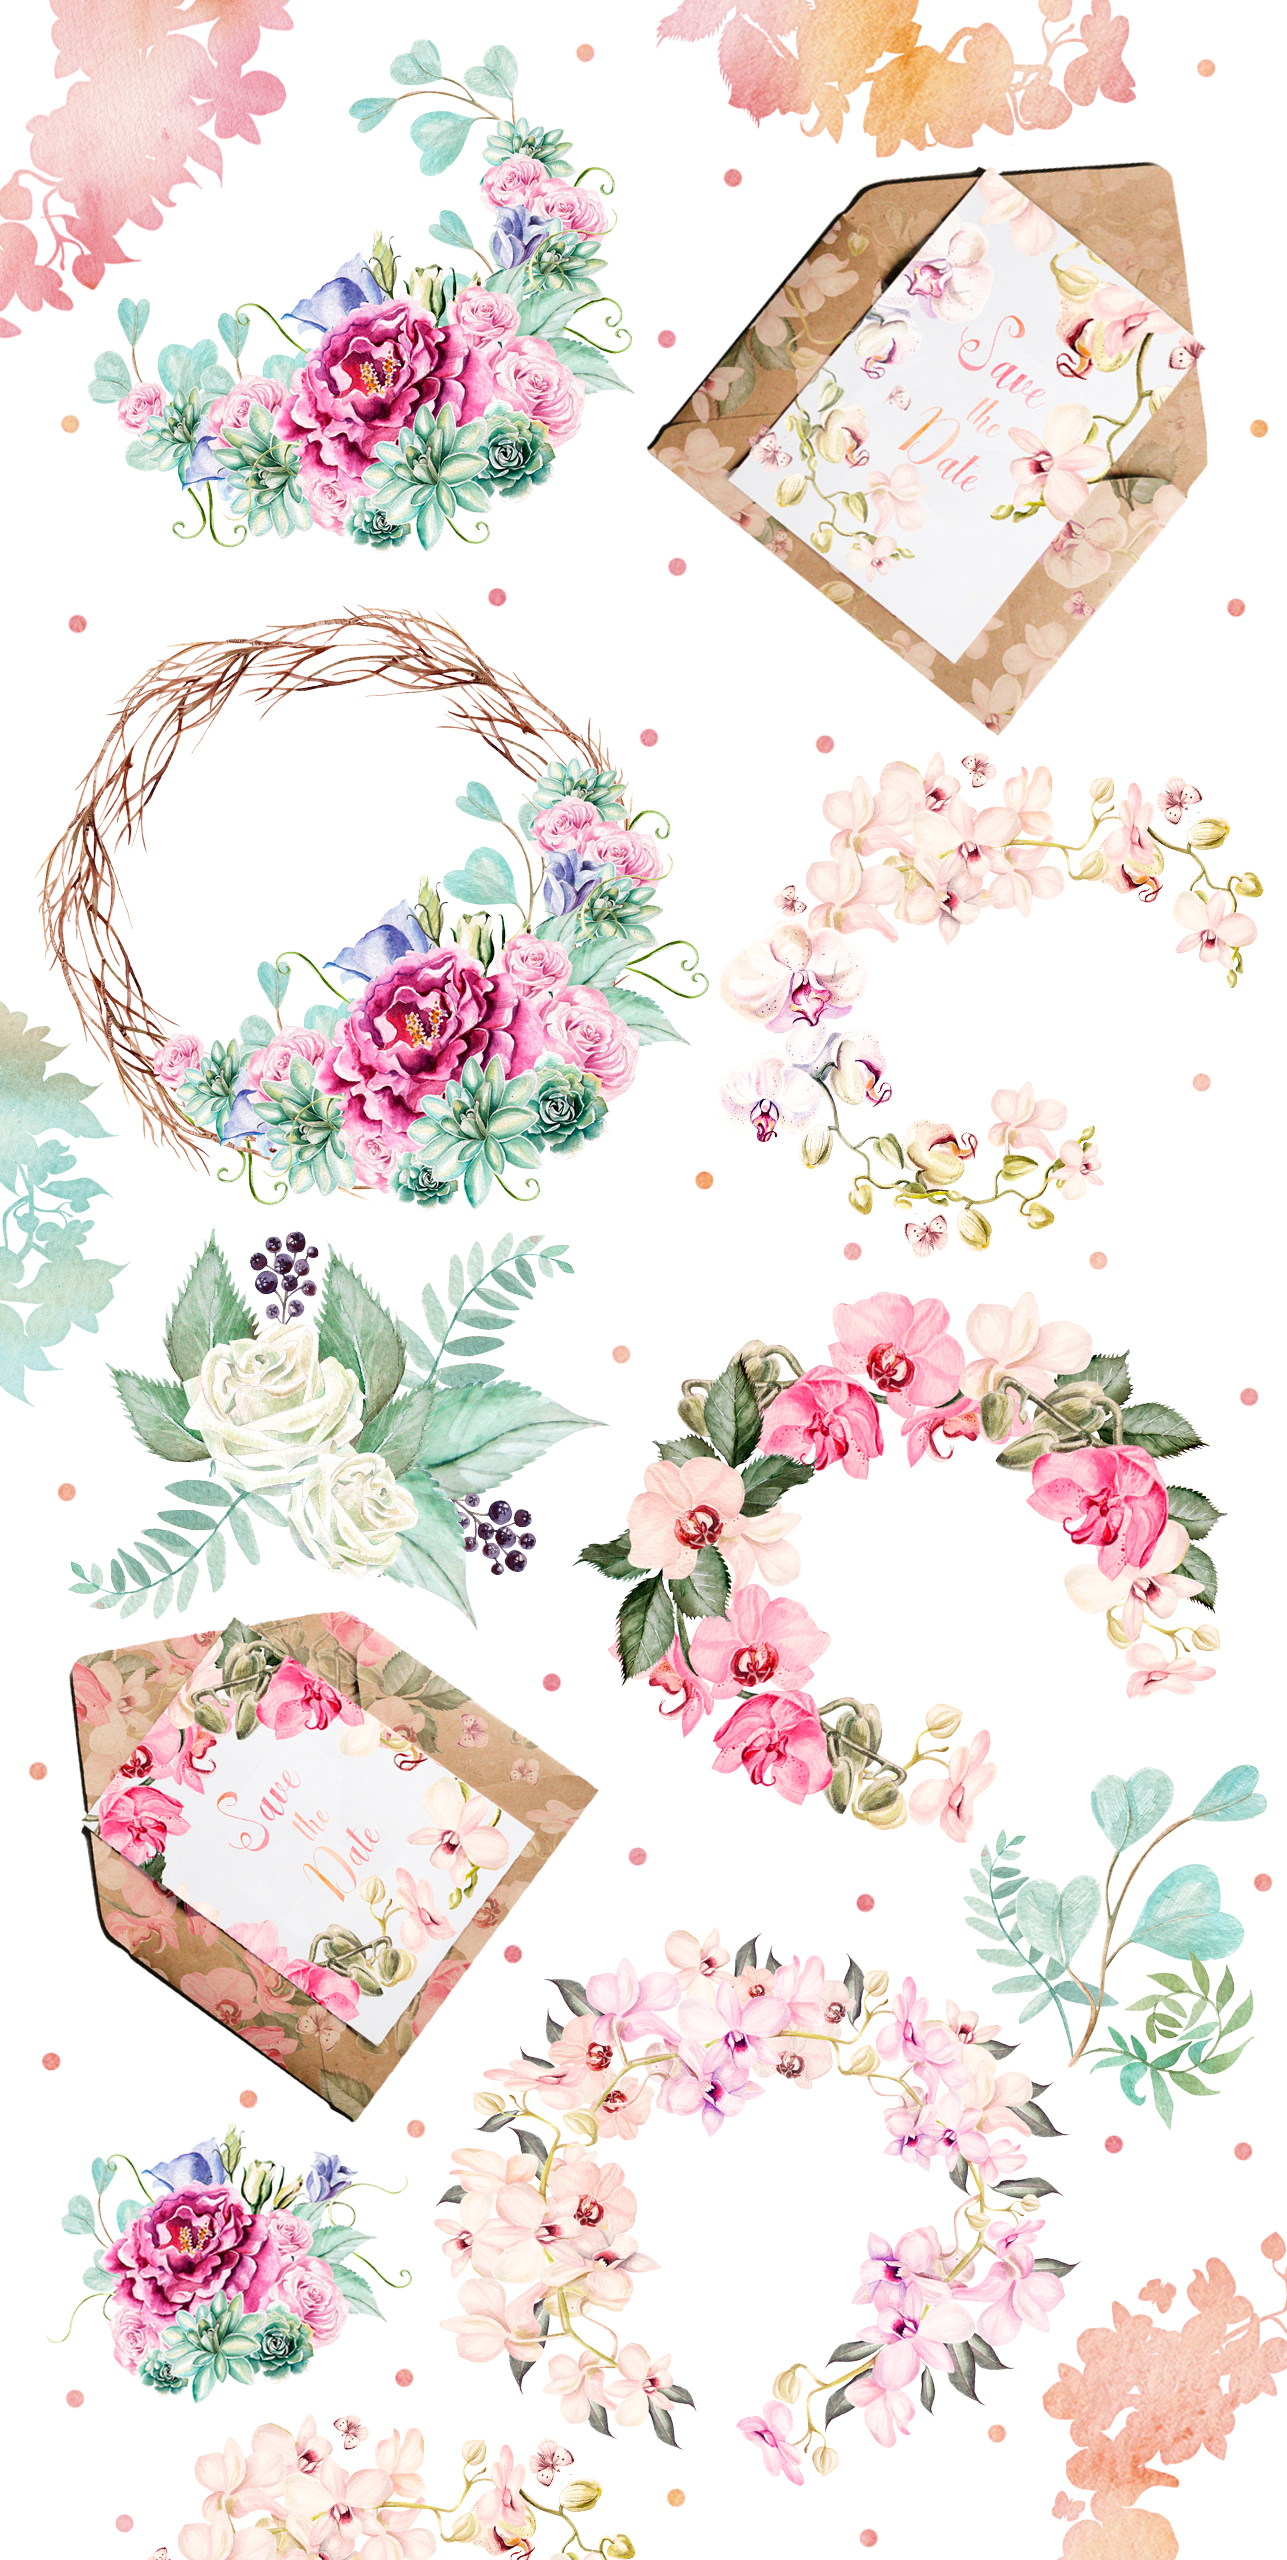 Watercolor Elements & Wreath example image 4